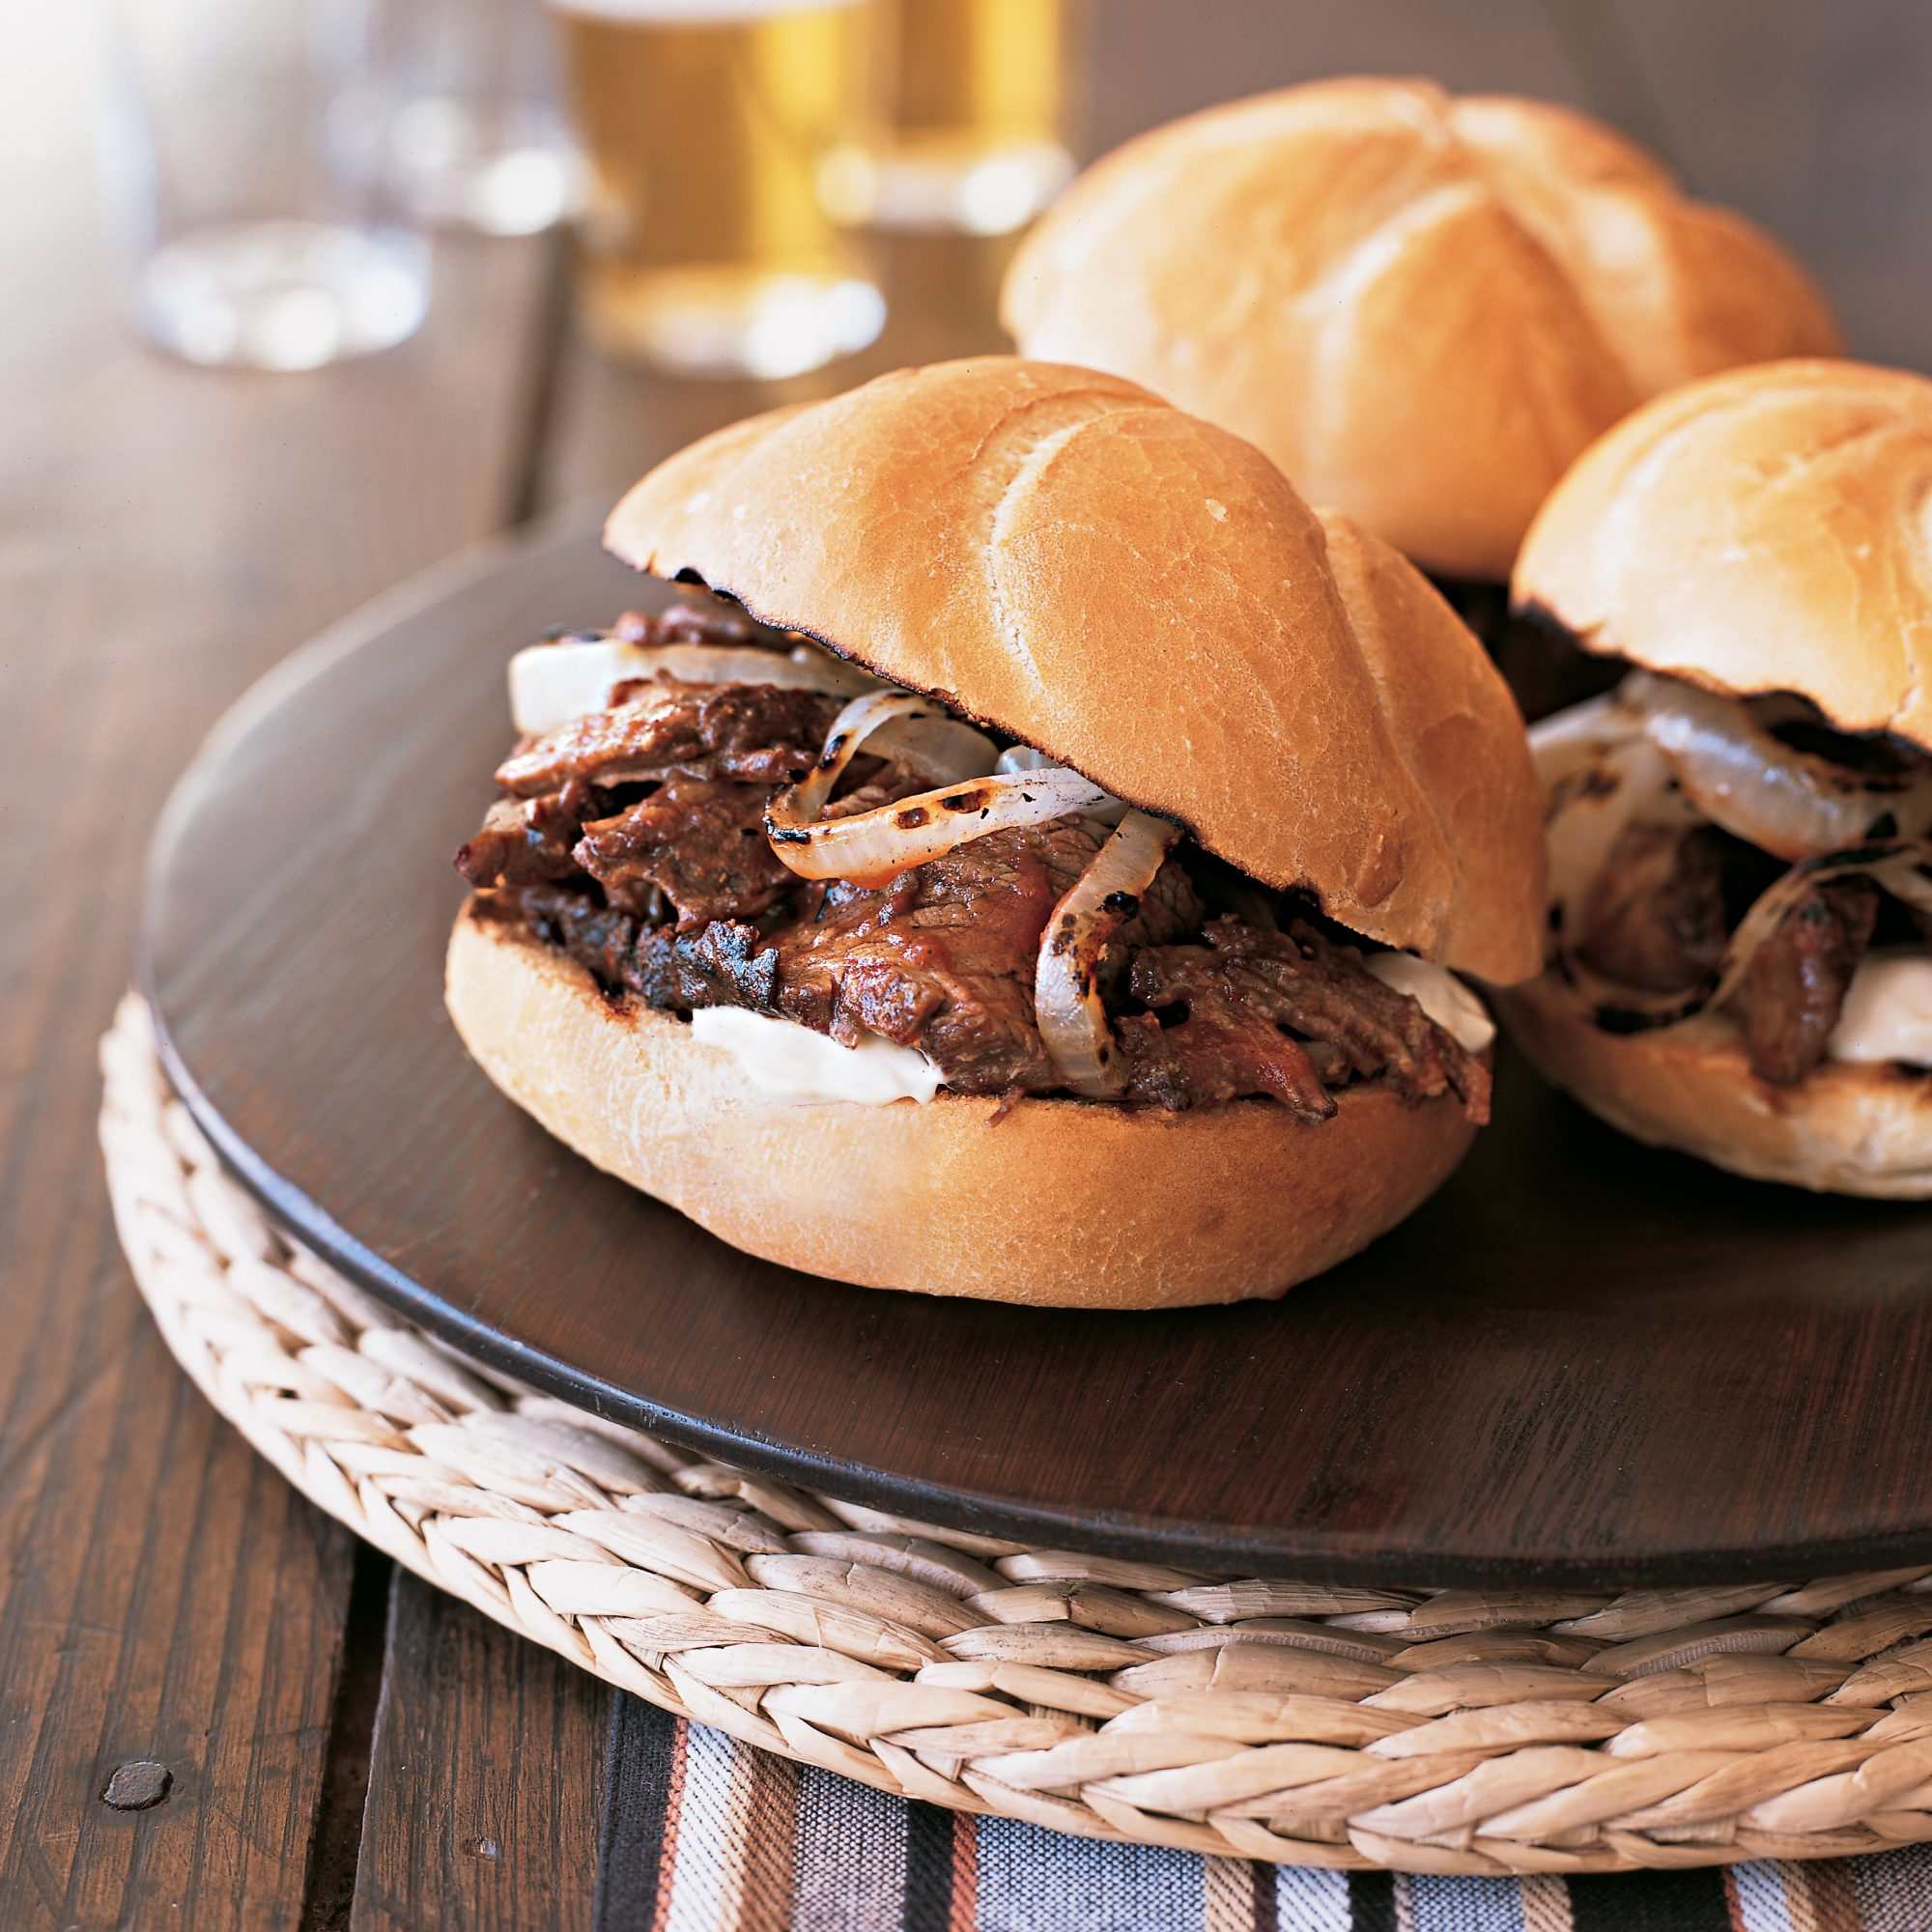 Short Rib Sandwiches with Horseradish Mayonnaise